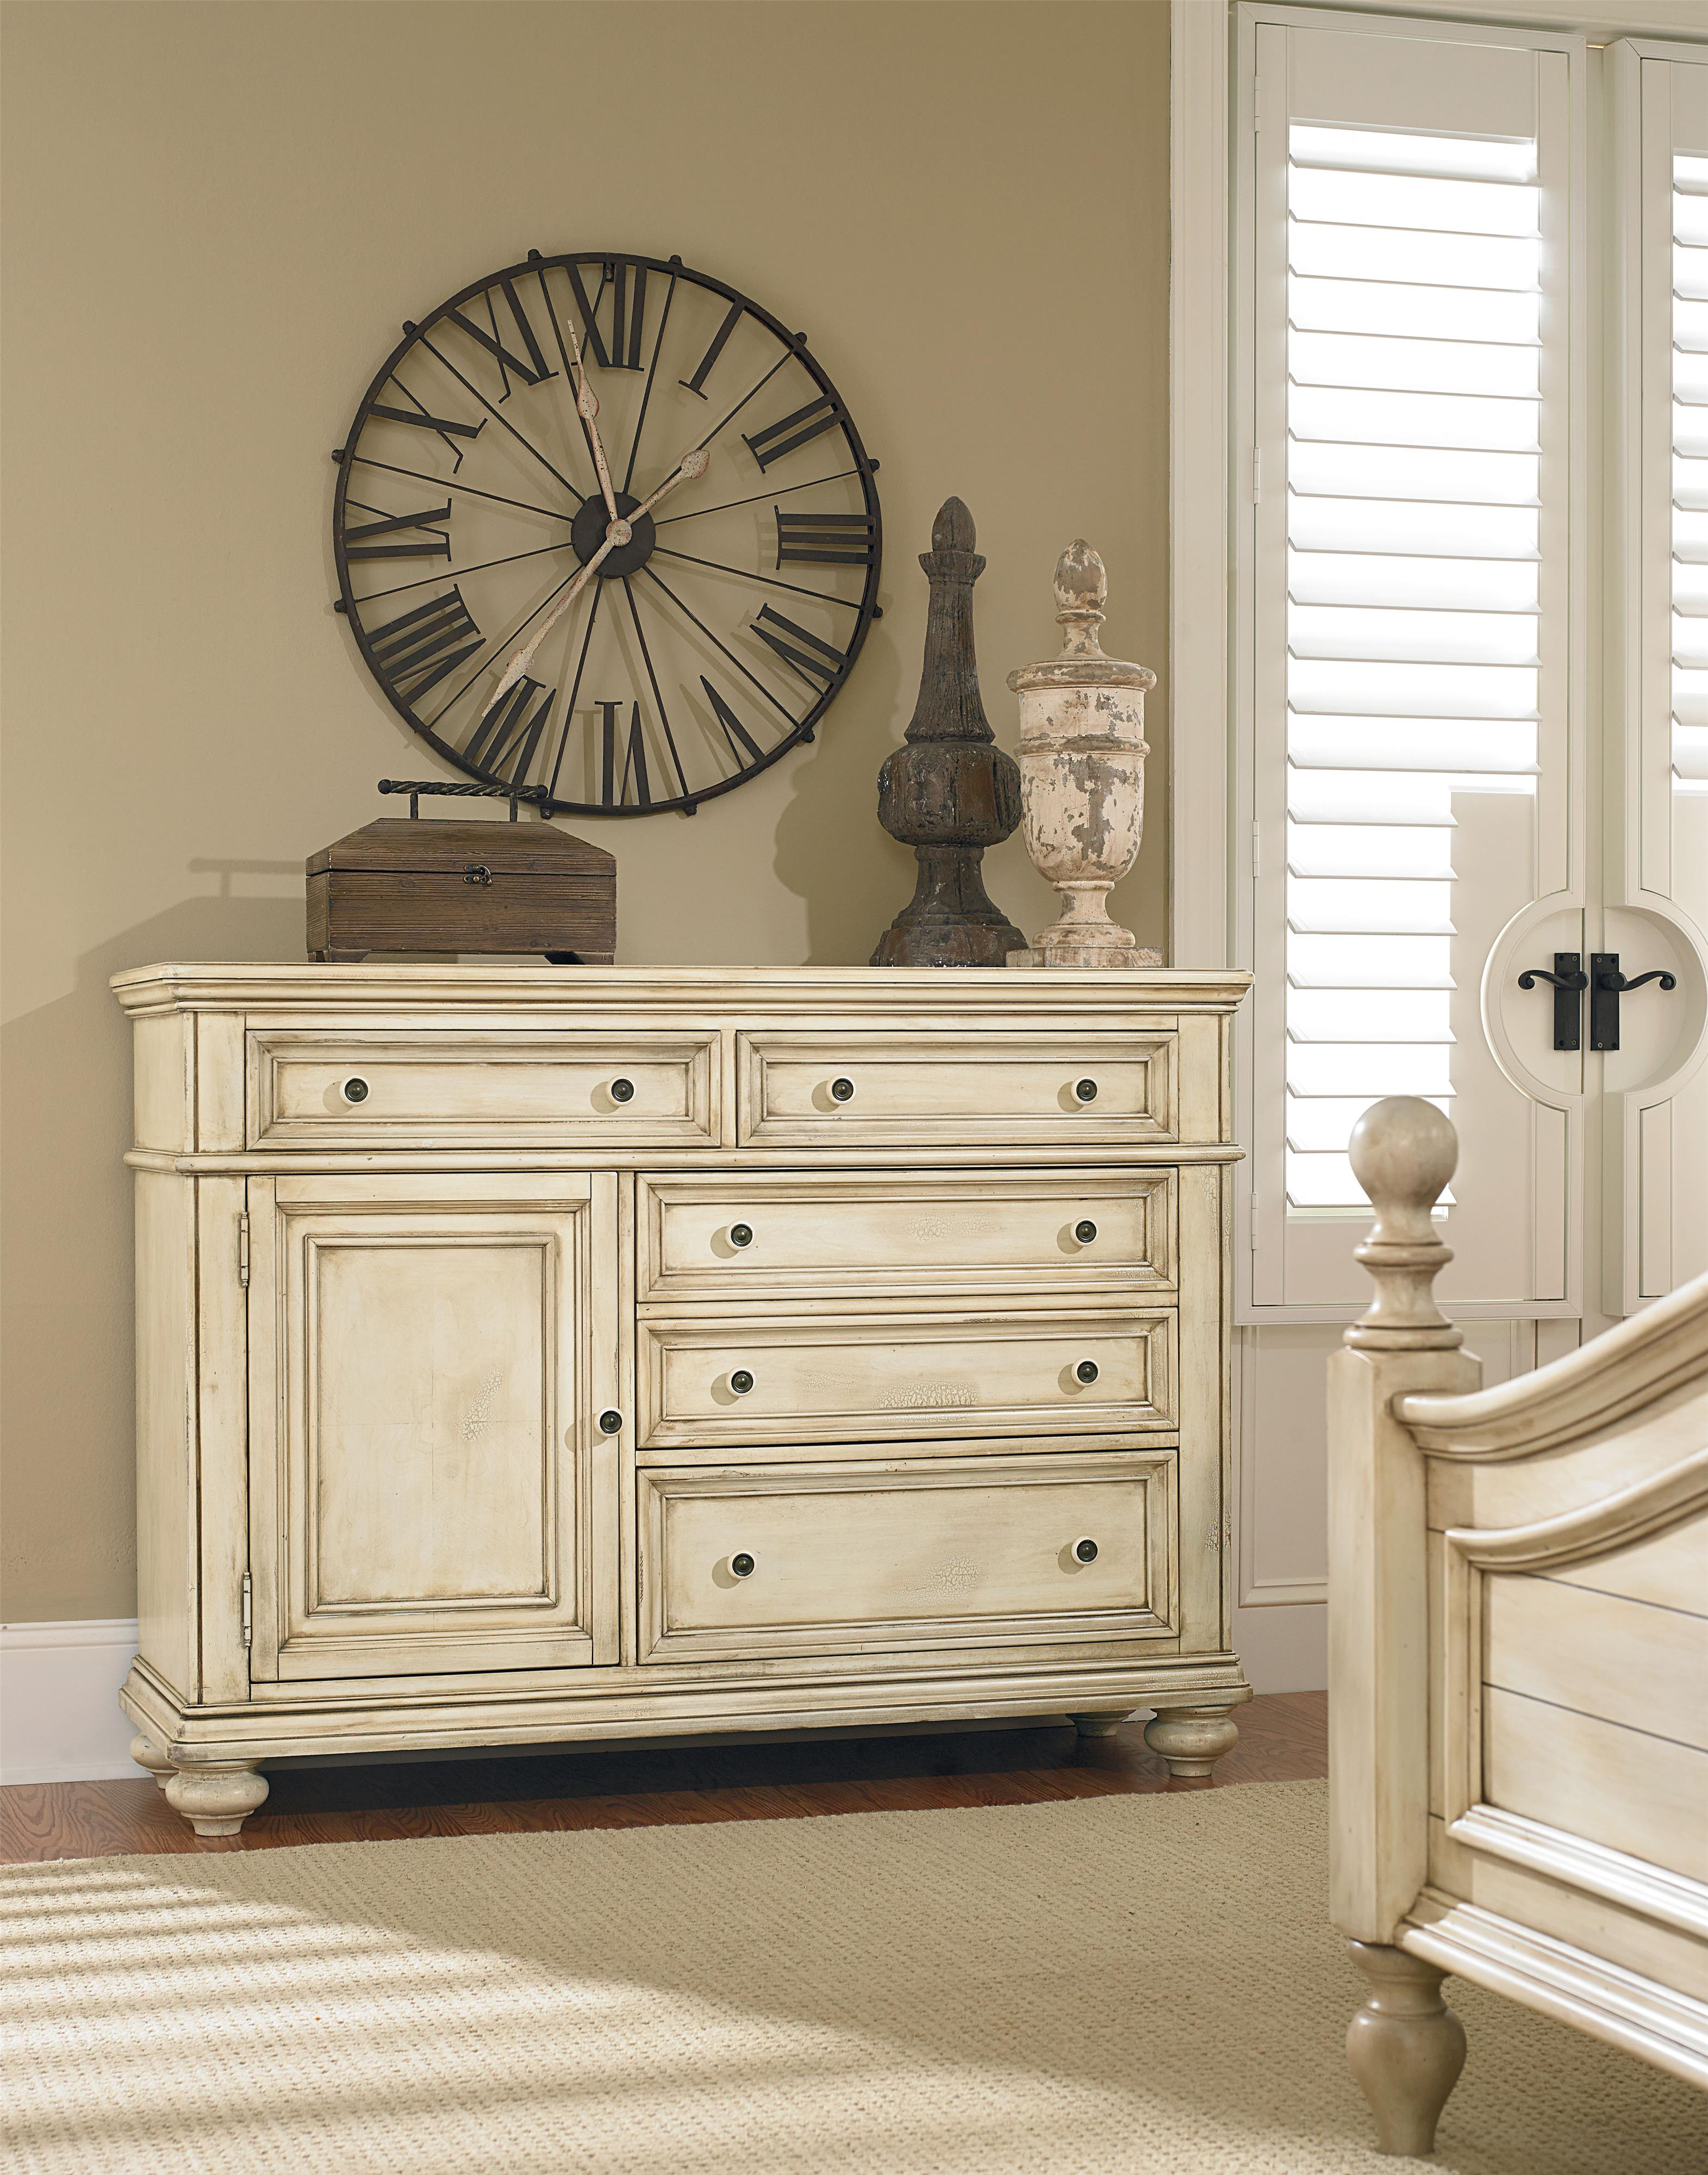 Superior Chesser With 5 Drawers And 1 Door. By Standard Furniture